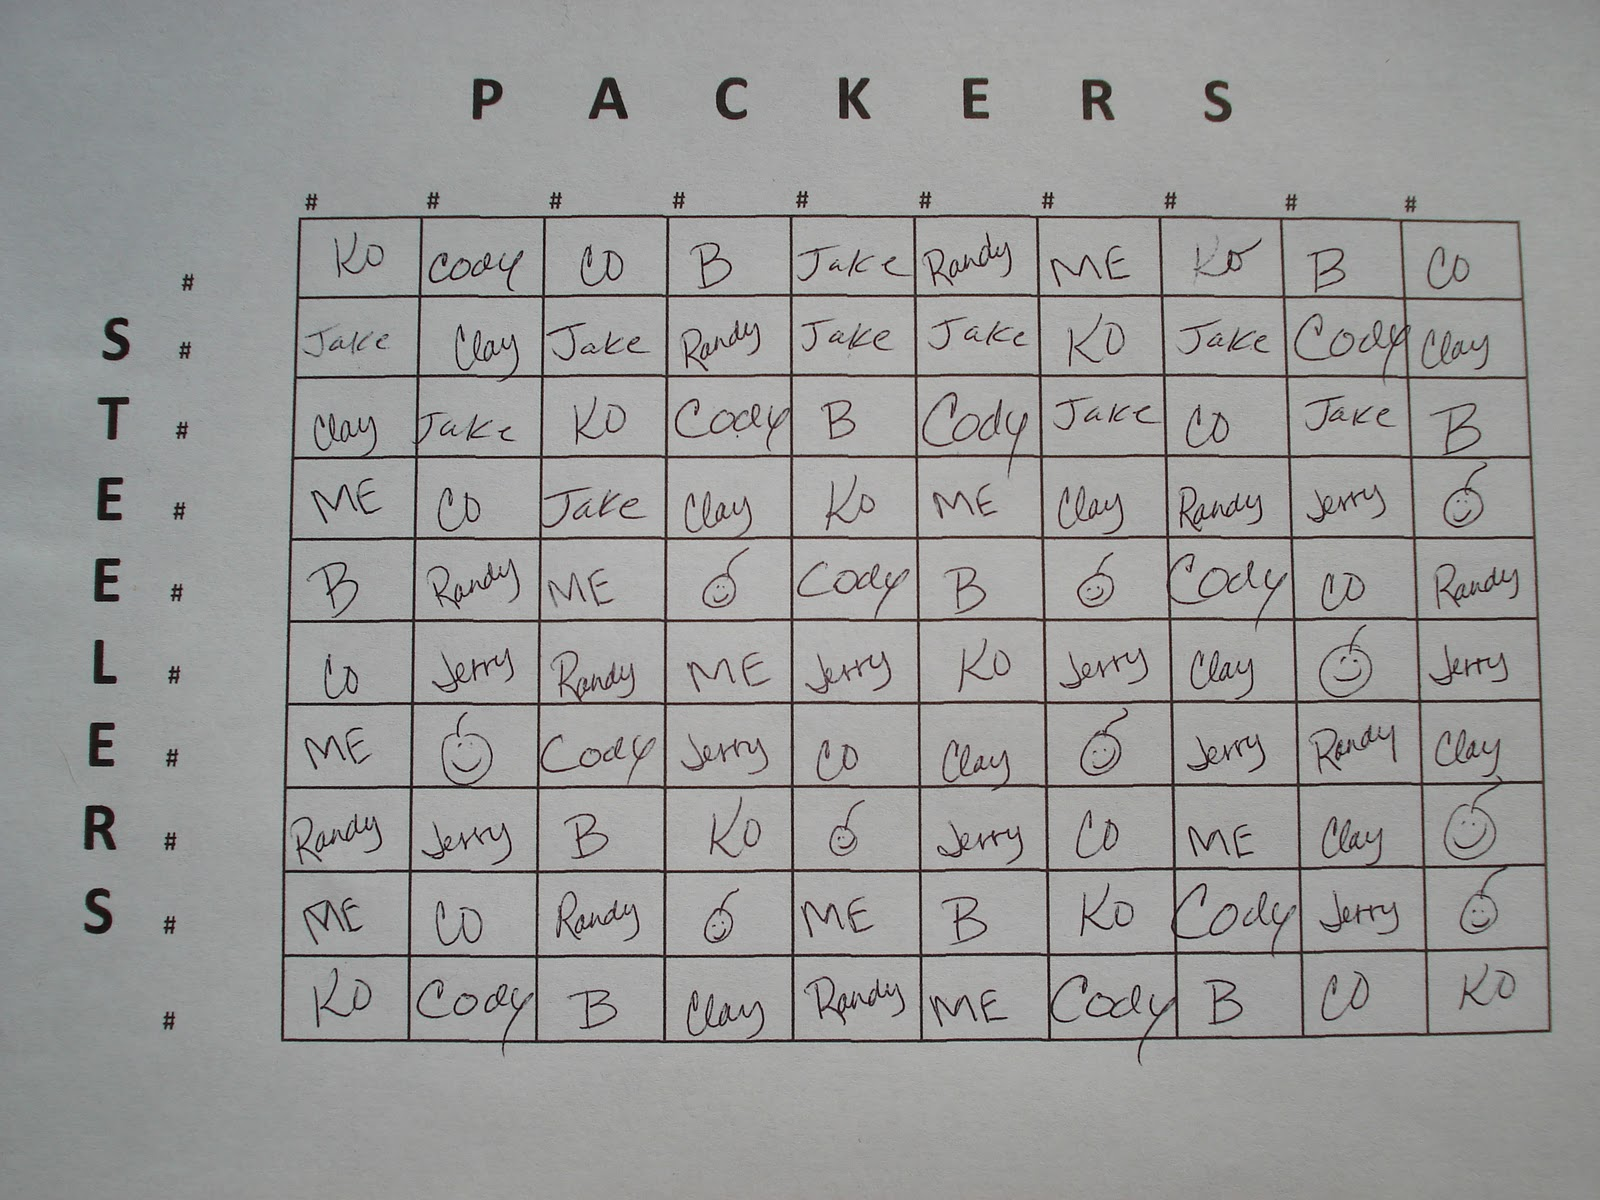 Super Bowl Pools Ideas square board betting chart for super bowl party Now You Are Ready To Add The Numbers From A Deck Of Cards Take Out One Joker For 0 Plus Ace Through 9 Shuffle Your Mini Deck And Flip The Cards Over